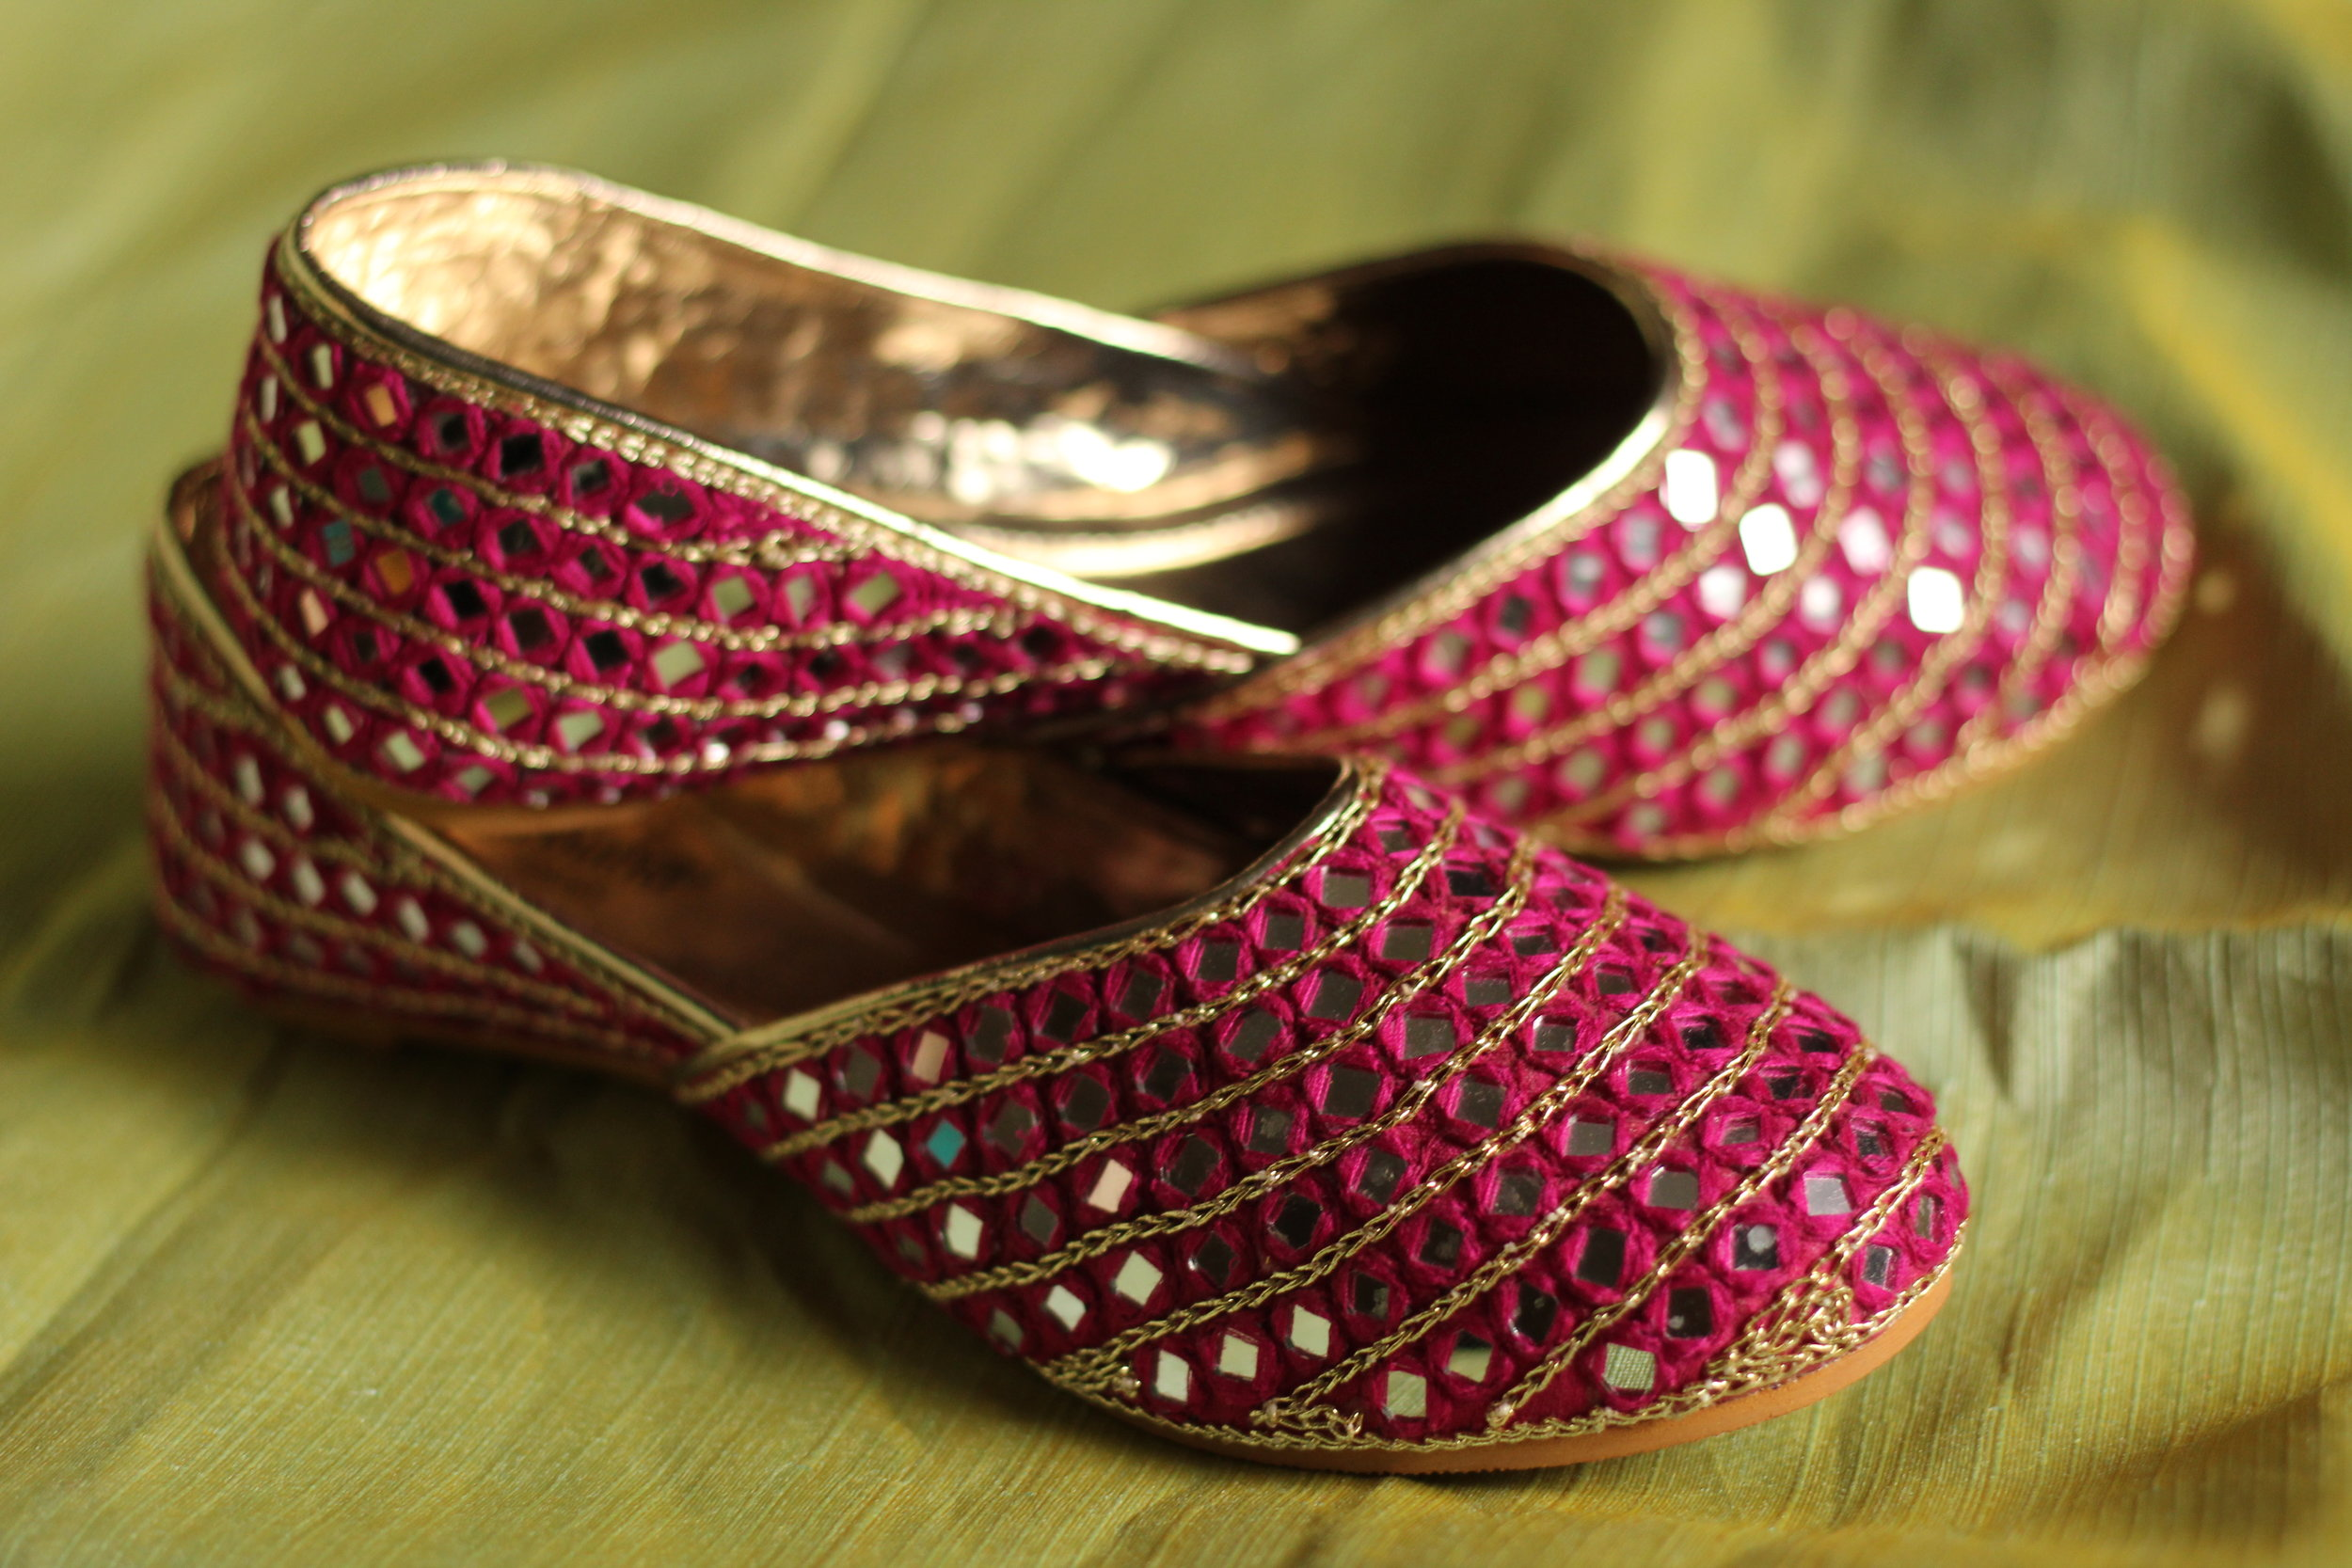 SPARKLING DIVA - Cinderella is a proof that a pair of shoes can change your life. Well we have designed this stunning piece keeping just that in mind!